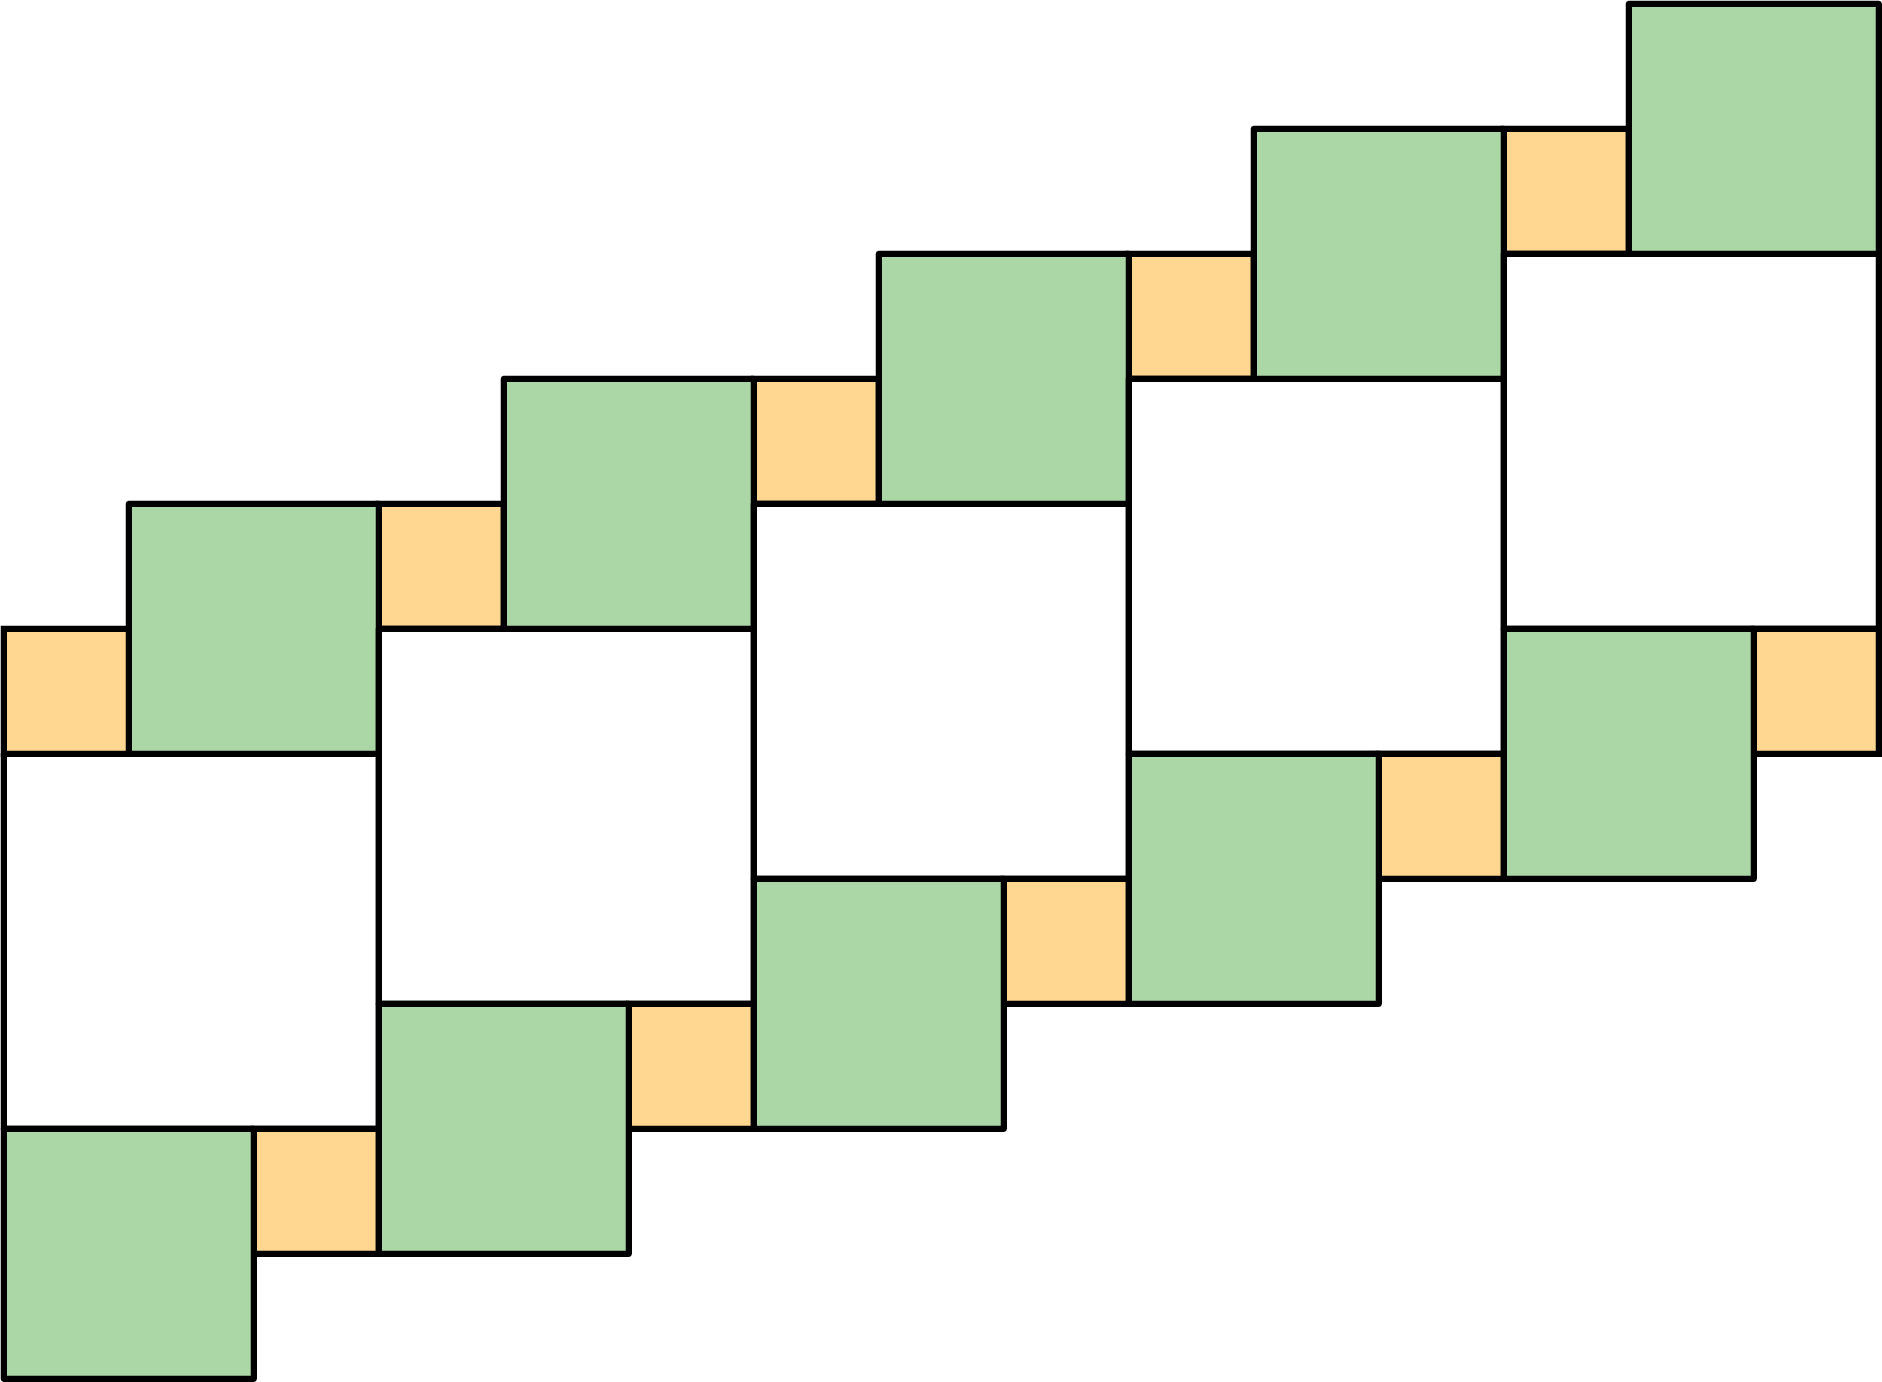 A plane composed of a series of squares. There are 5 large squares, 10 medium squares, and 10 small squares.